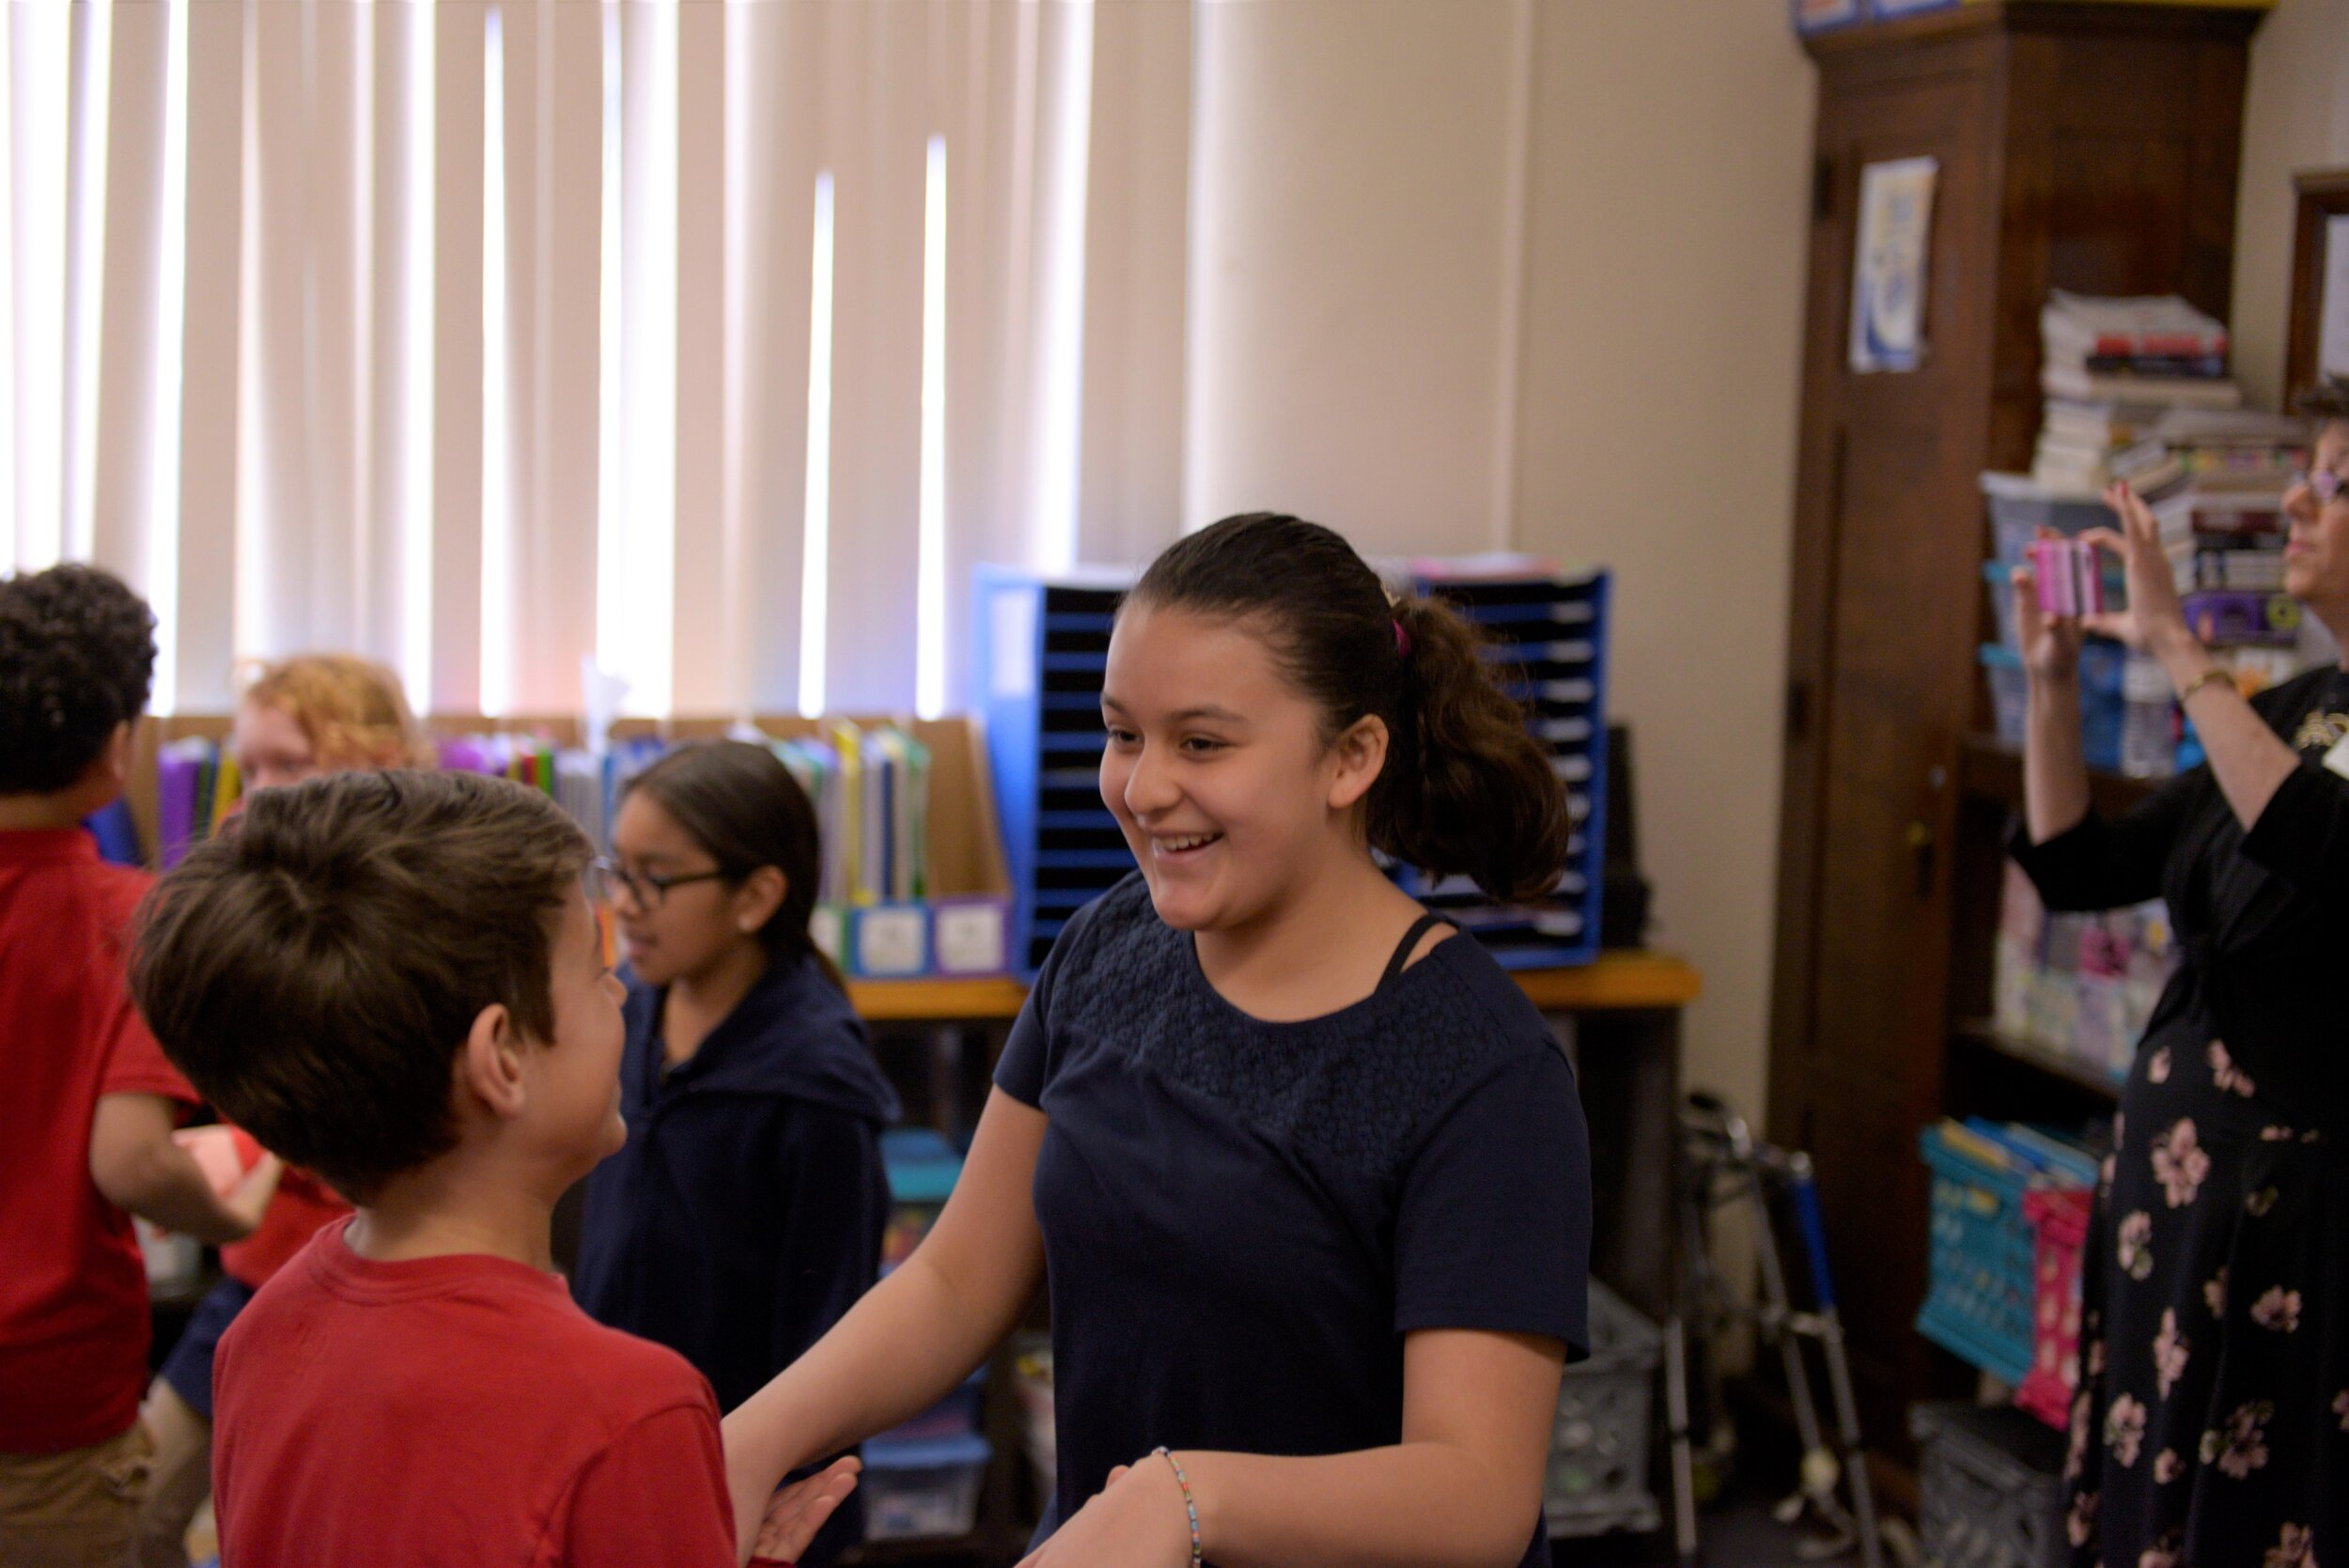 """- Lisa Anderson, a now retired fifth grade teacher at Pinewood Elementary School in Rochester, remains an advocate for Dancing Classrooms after her positive classroom experience in 2017. According to Lisa's testimony for our Rochester Area Foundation grant, """"Dancing Classrooms is a program that not only welcomes all students, but expects them to demonstrate strength of character at the highest level."""""""